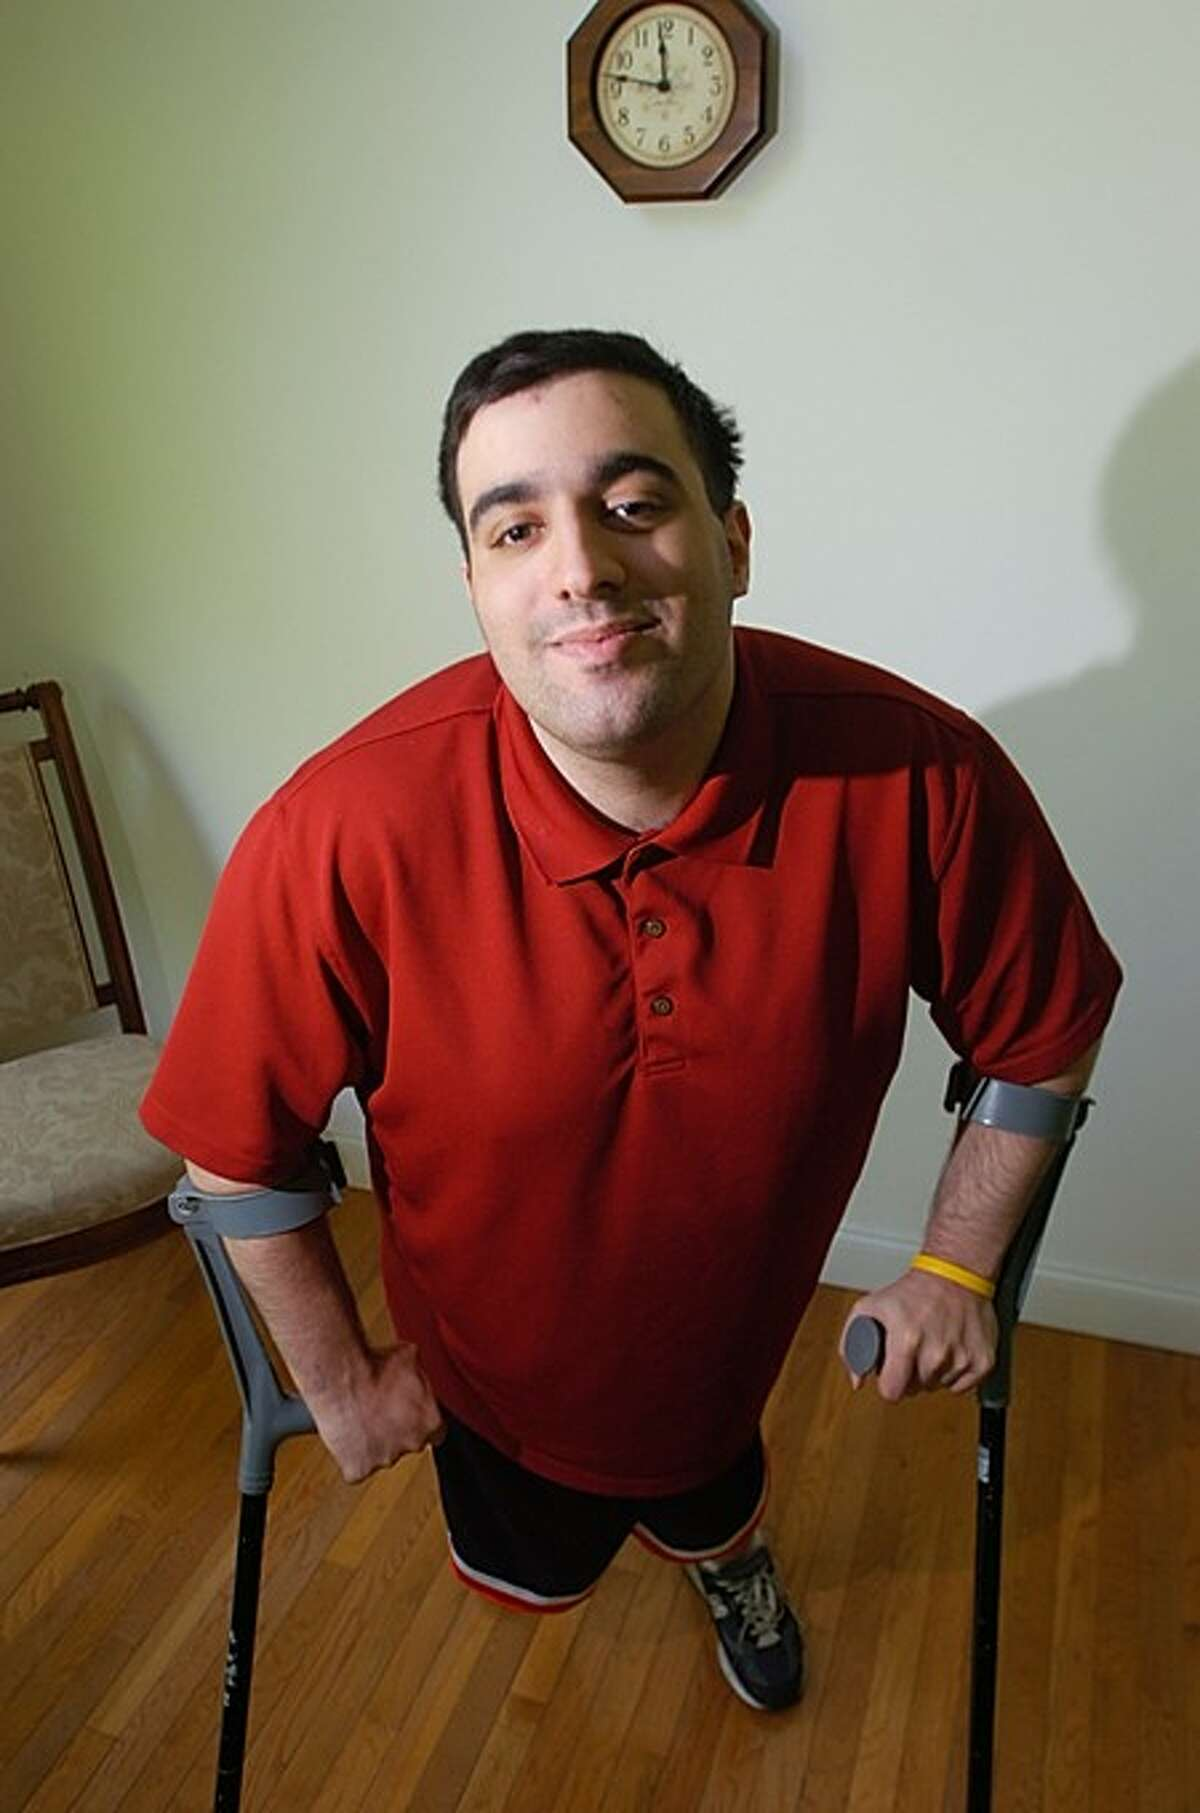 James Lacerenza is a 23-year-old with cerebral palsy competing for a $50,000 grant from Pepsi to send 70 kids with disabilities from the tri-state area to a week-long summer camp.